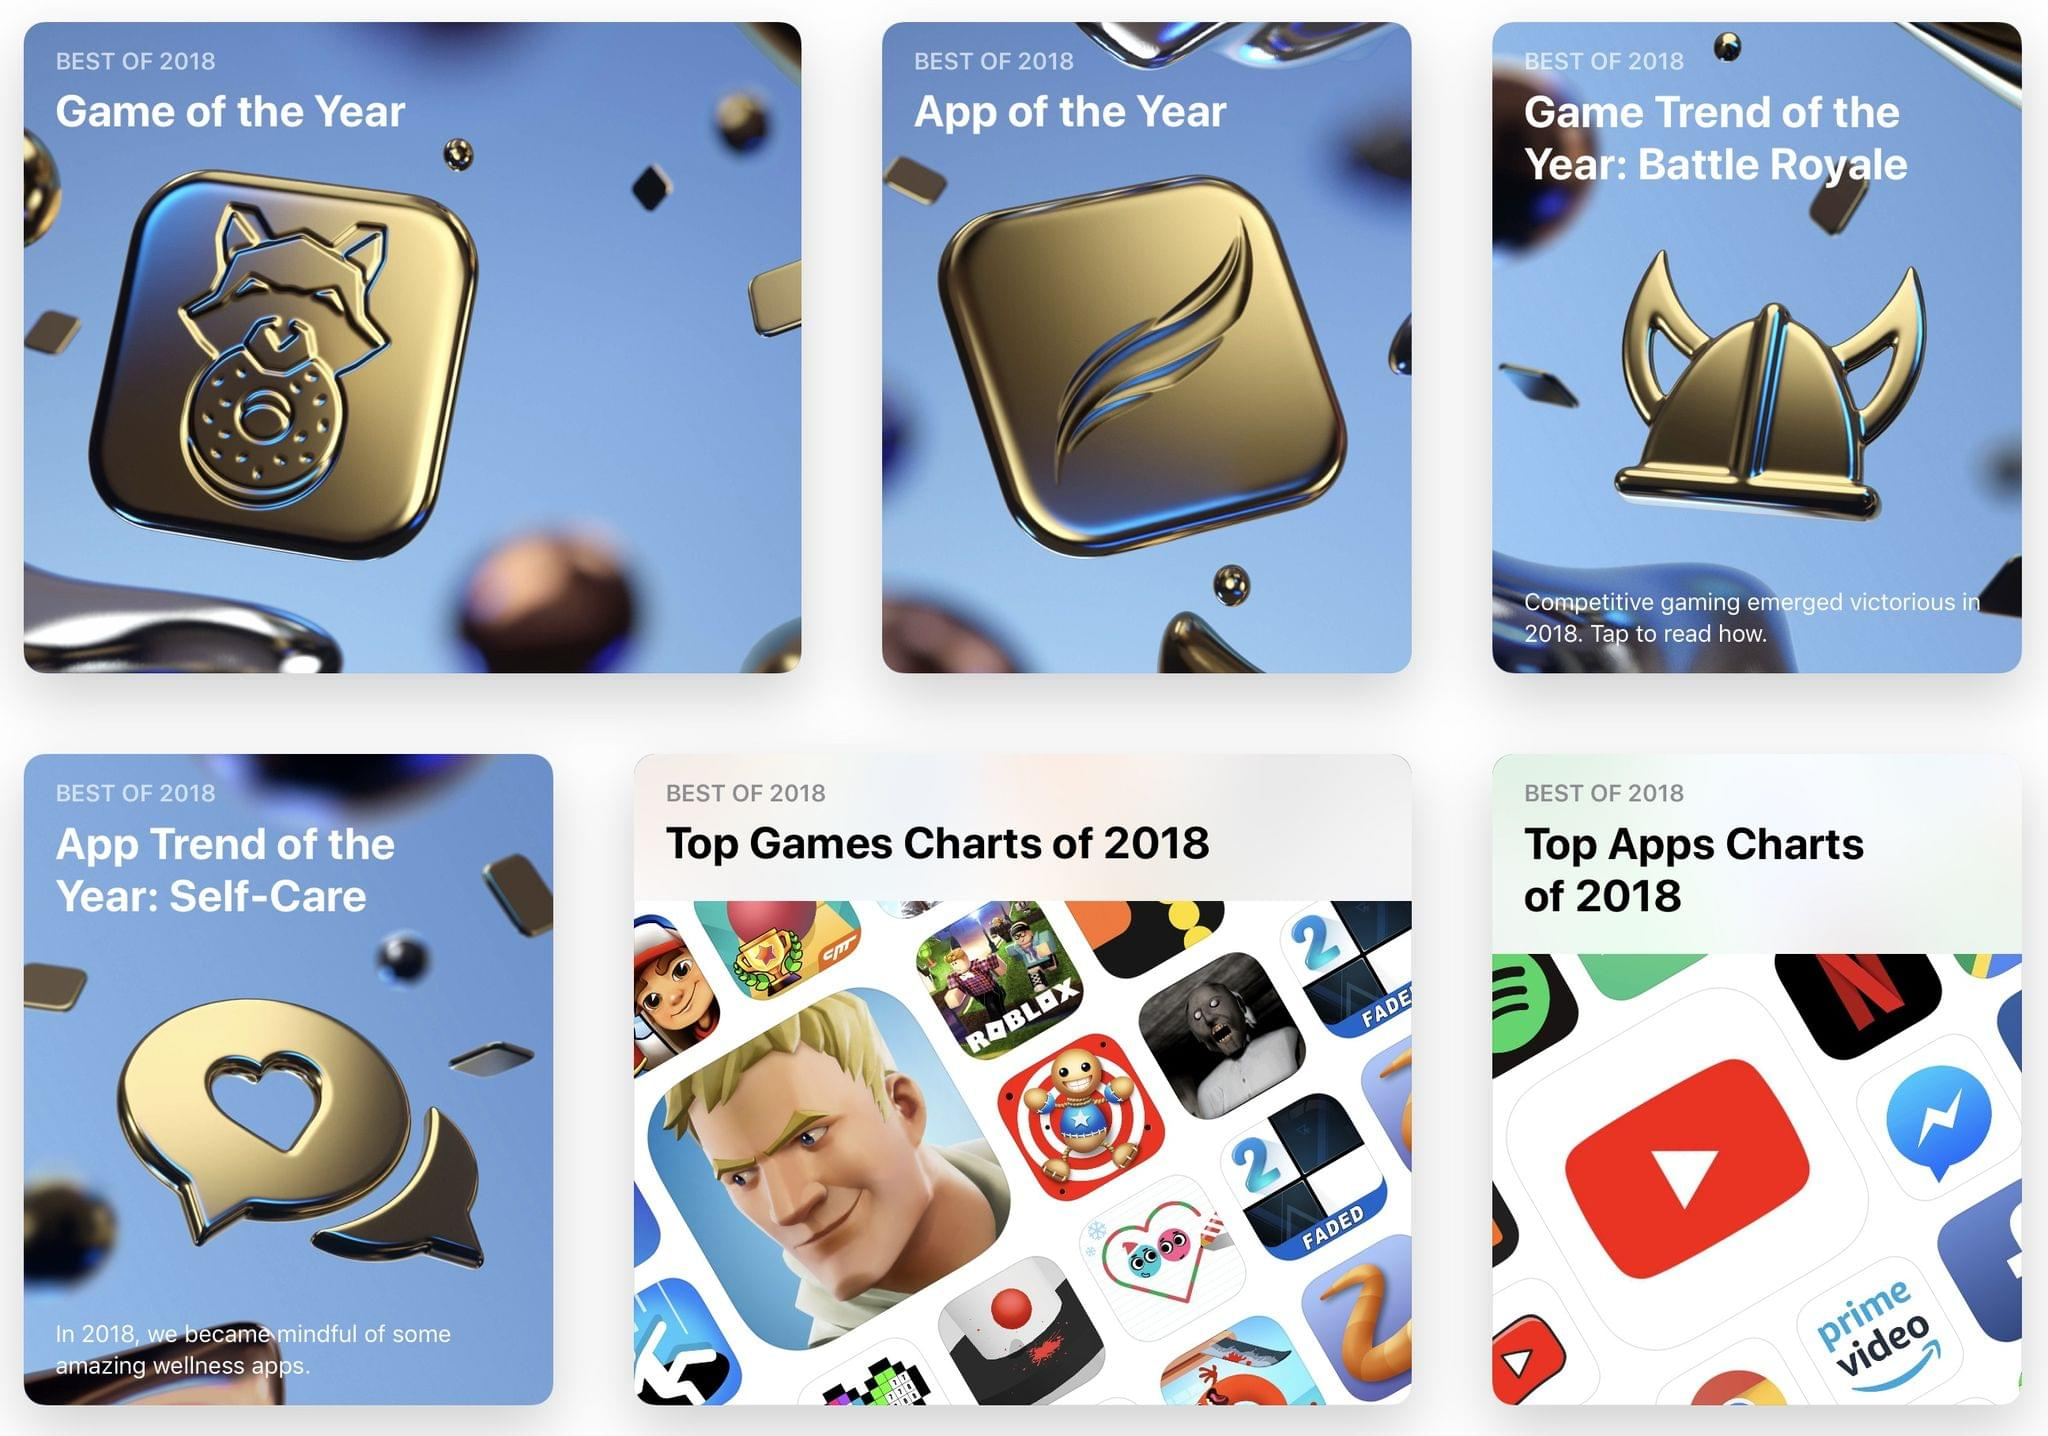 Epic and Apple's relationship wasn't always as contentious as it is today. Fortnite was frequently spotlighted in the App Store.